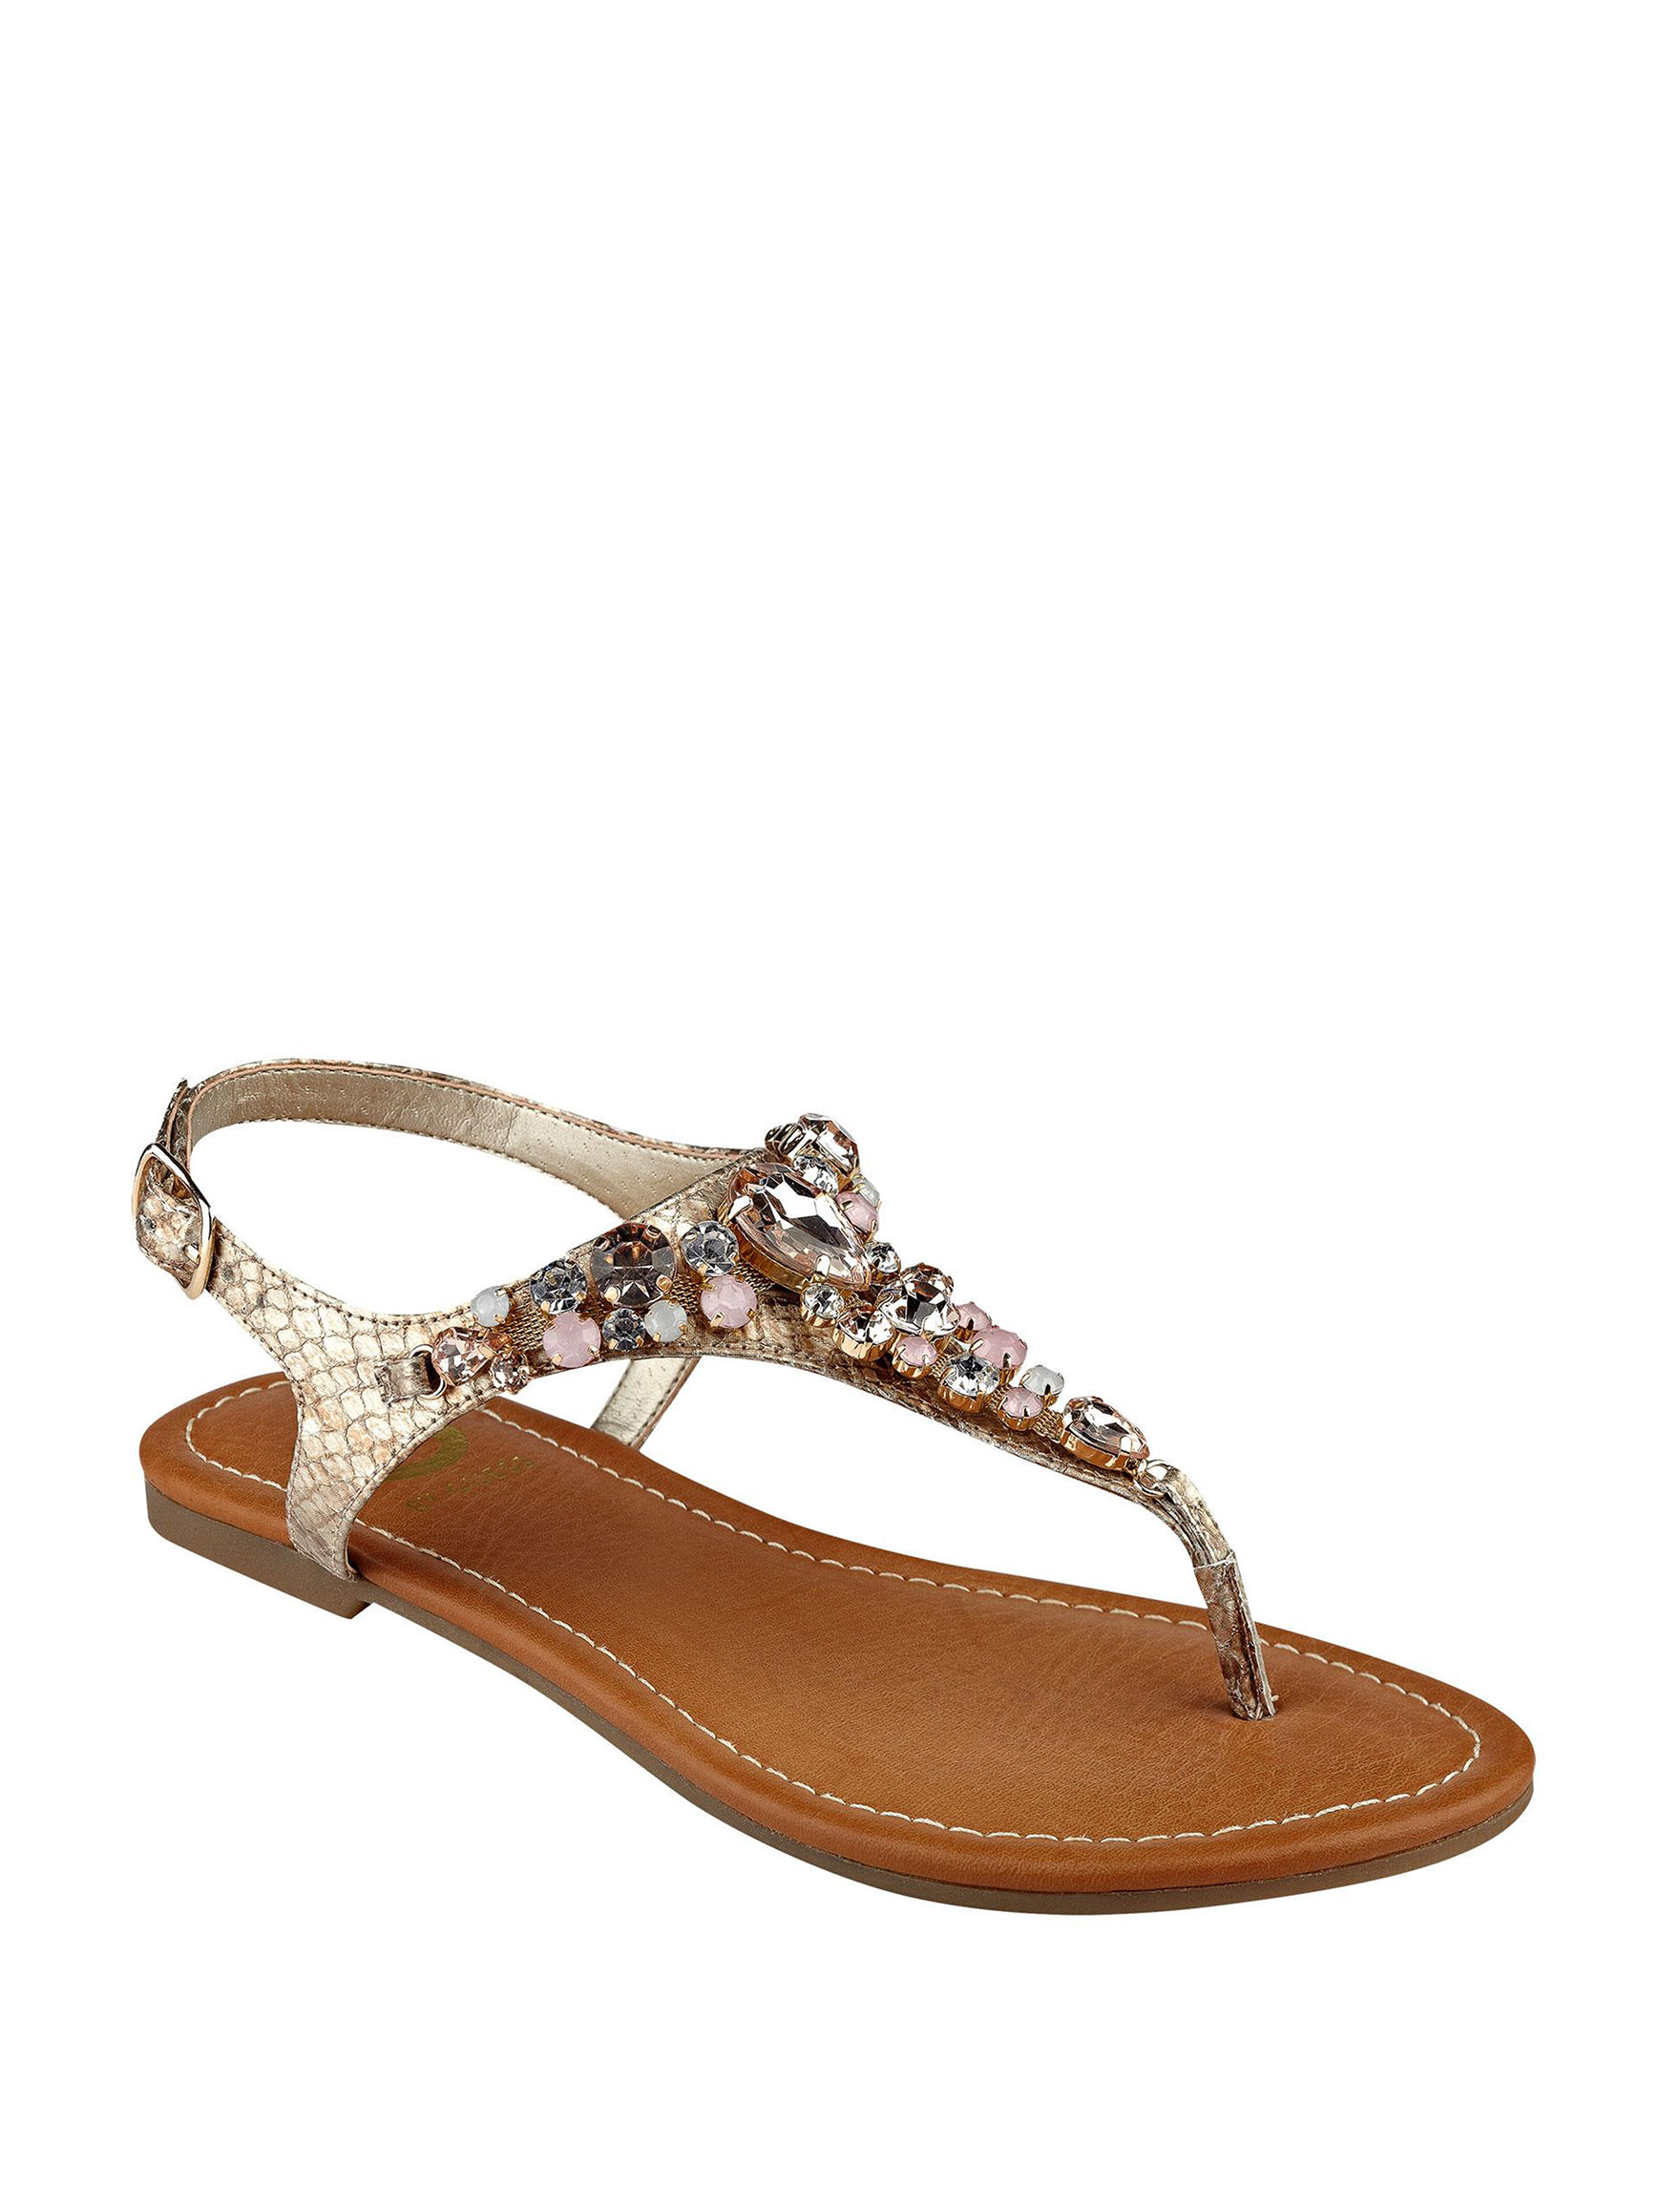 G by Guess Gold Flat Sandals